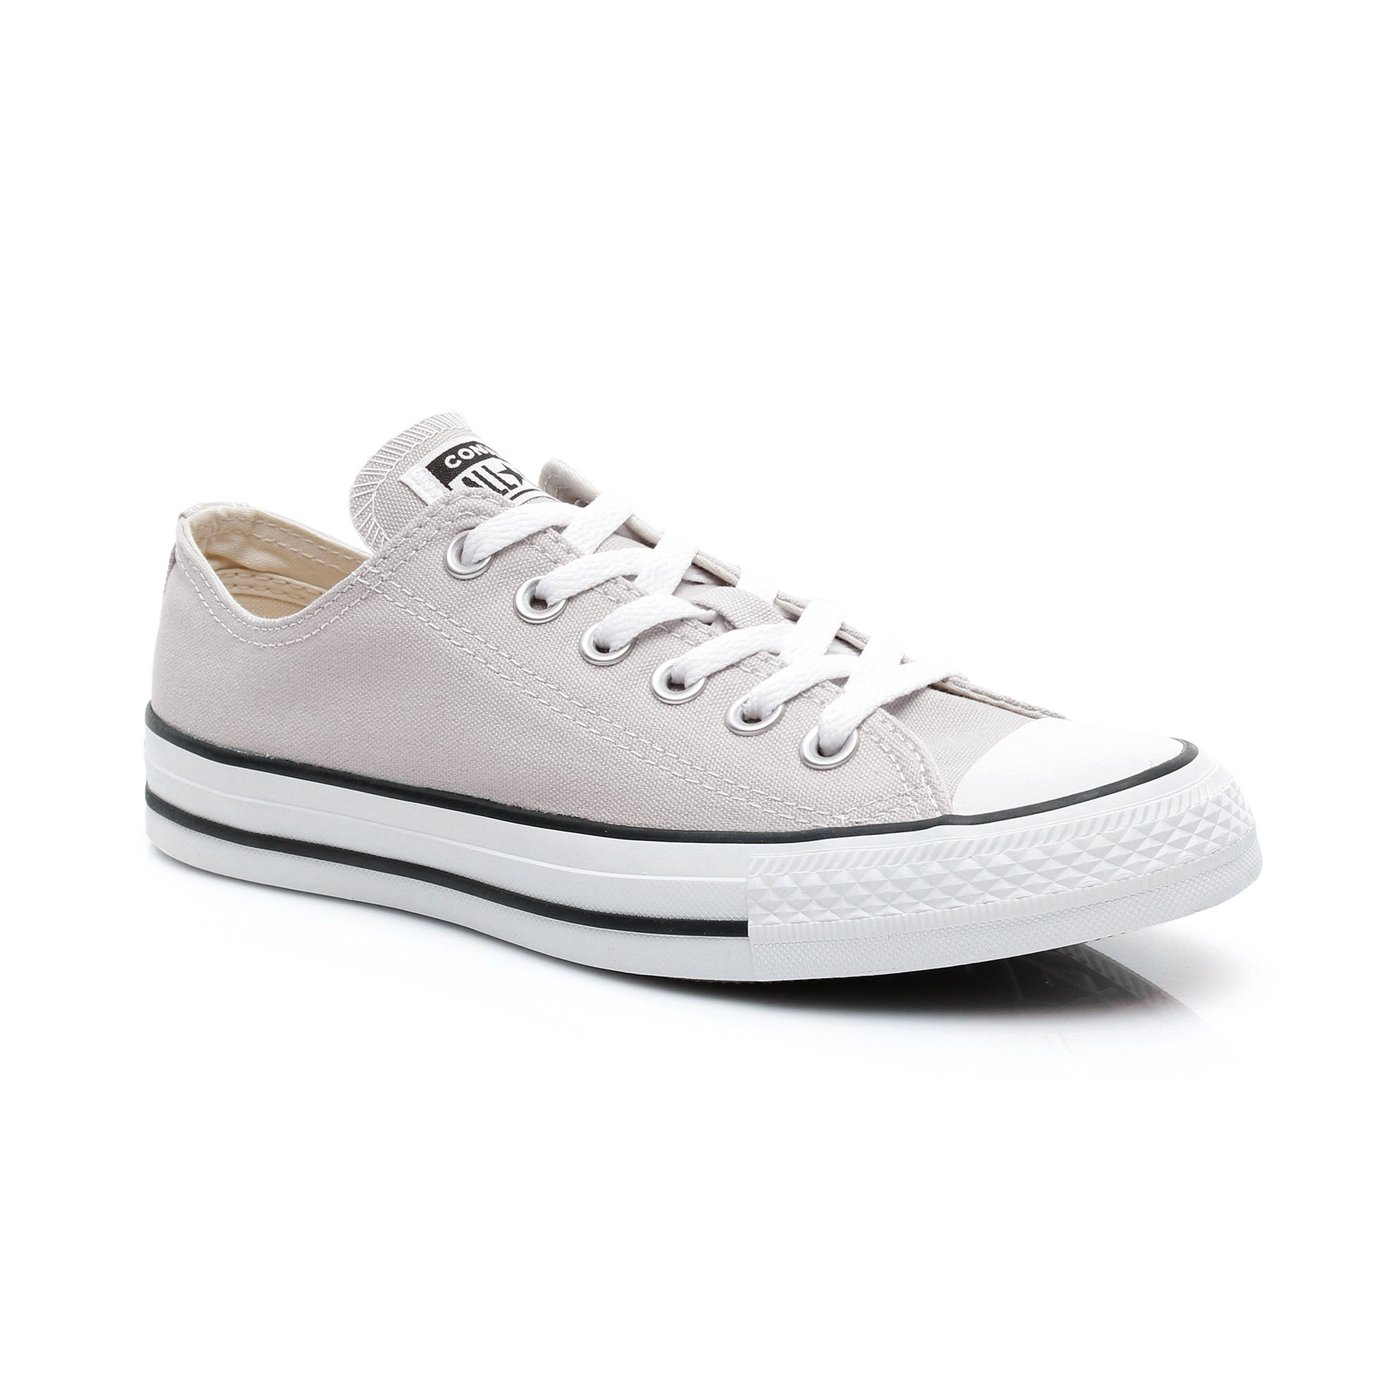 Converse Chuck Taylor All Star Seasonal Kadın Bej Sneaker